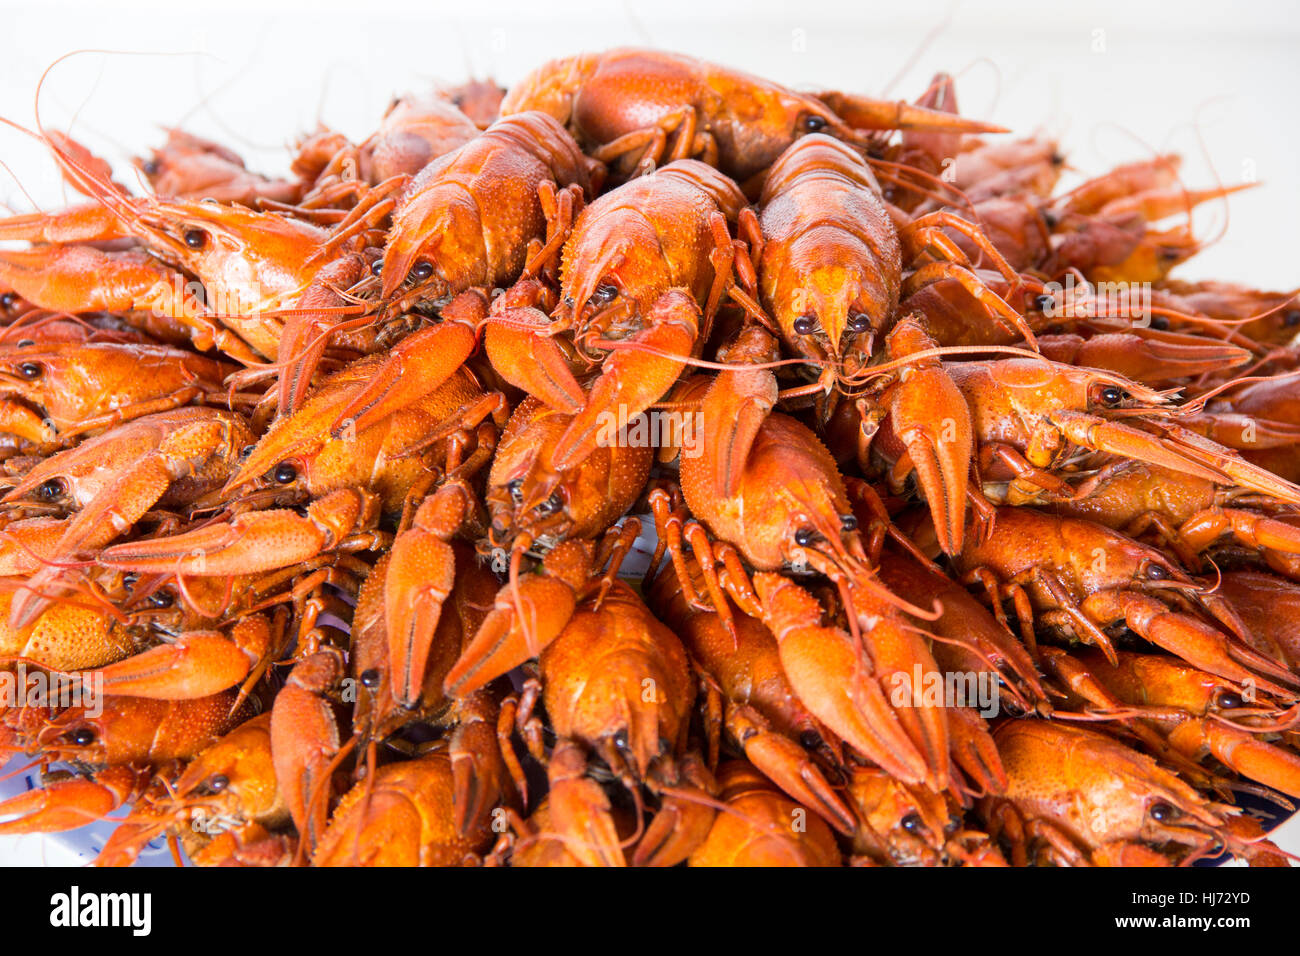 Photo of red boiled crawfishes on the dish - Stock Image